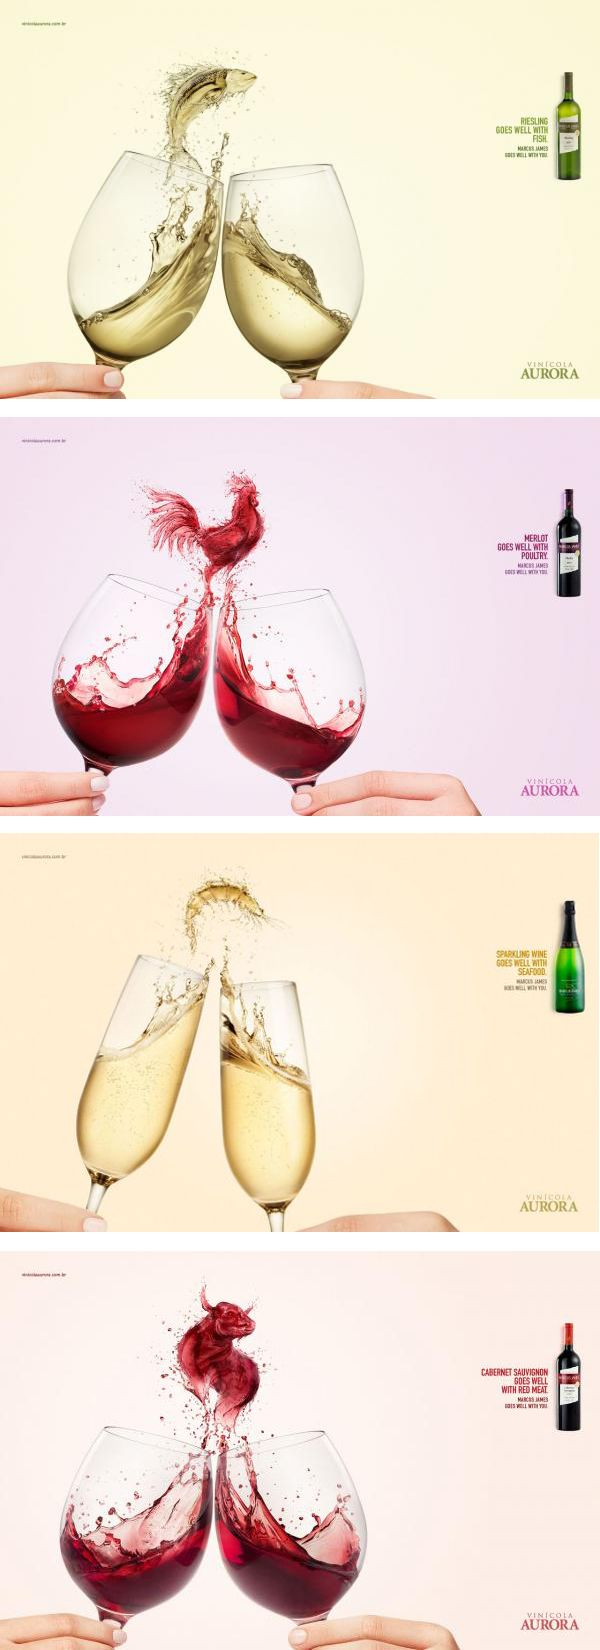 Great Advertisement Campaign for Aurora Wines -Do you like the visuals to cement food pairing ideas? #adv #creative #ads #marketing #print